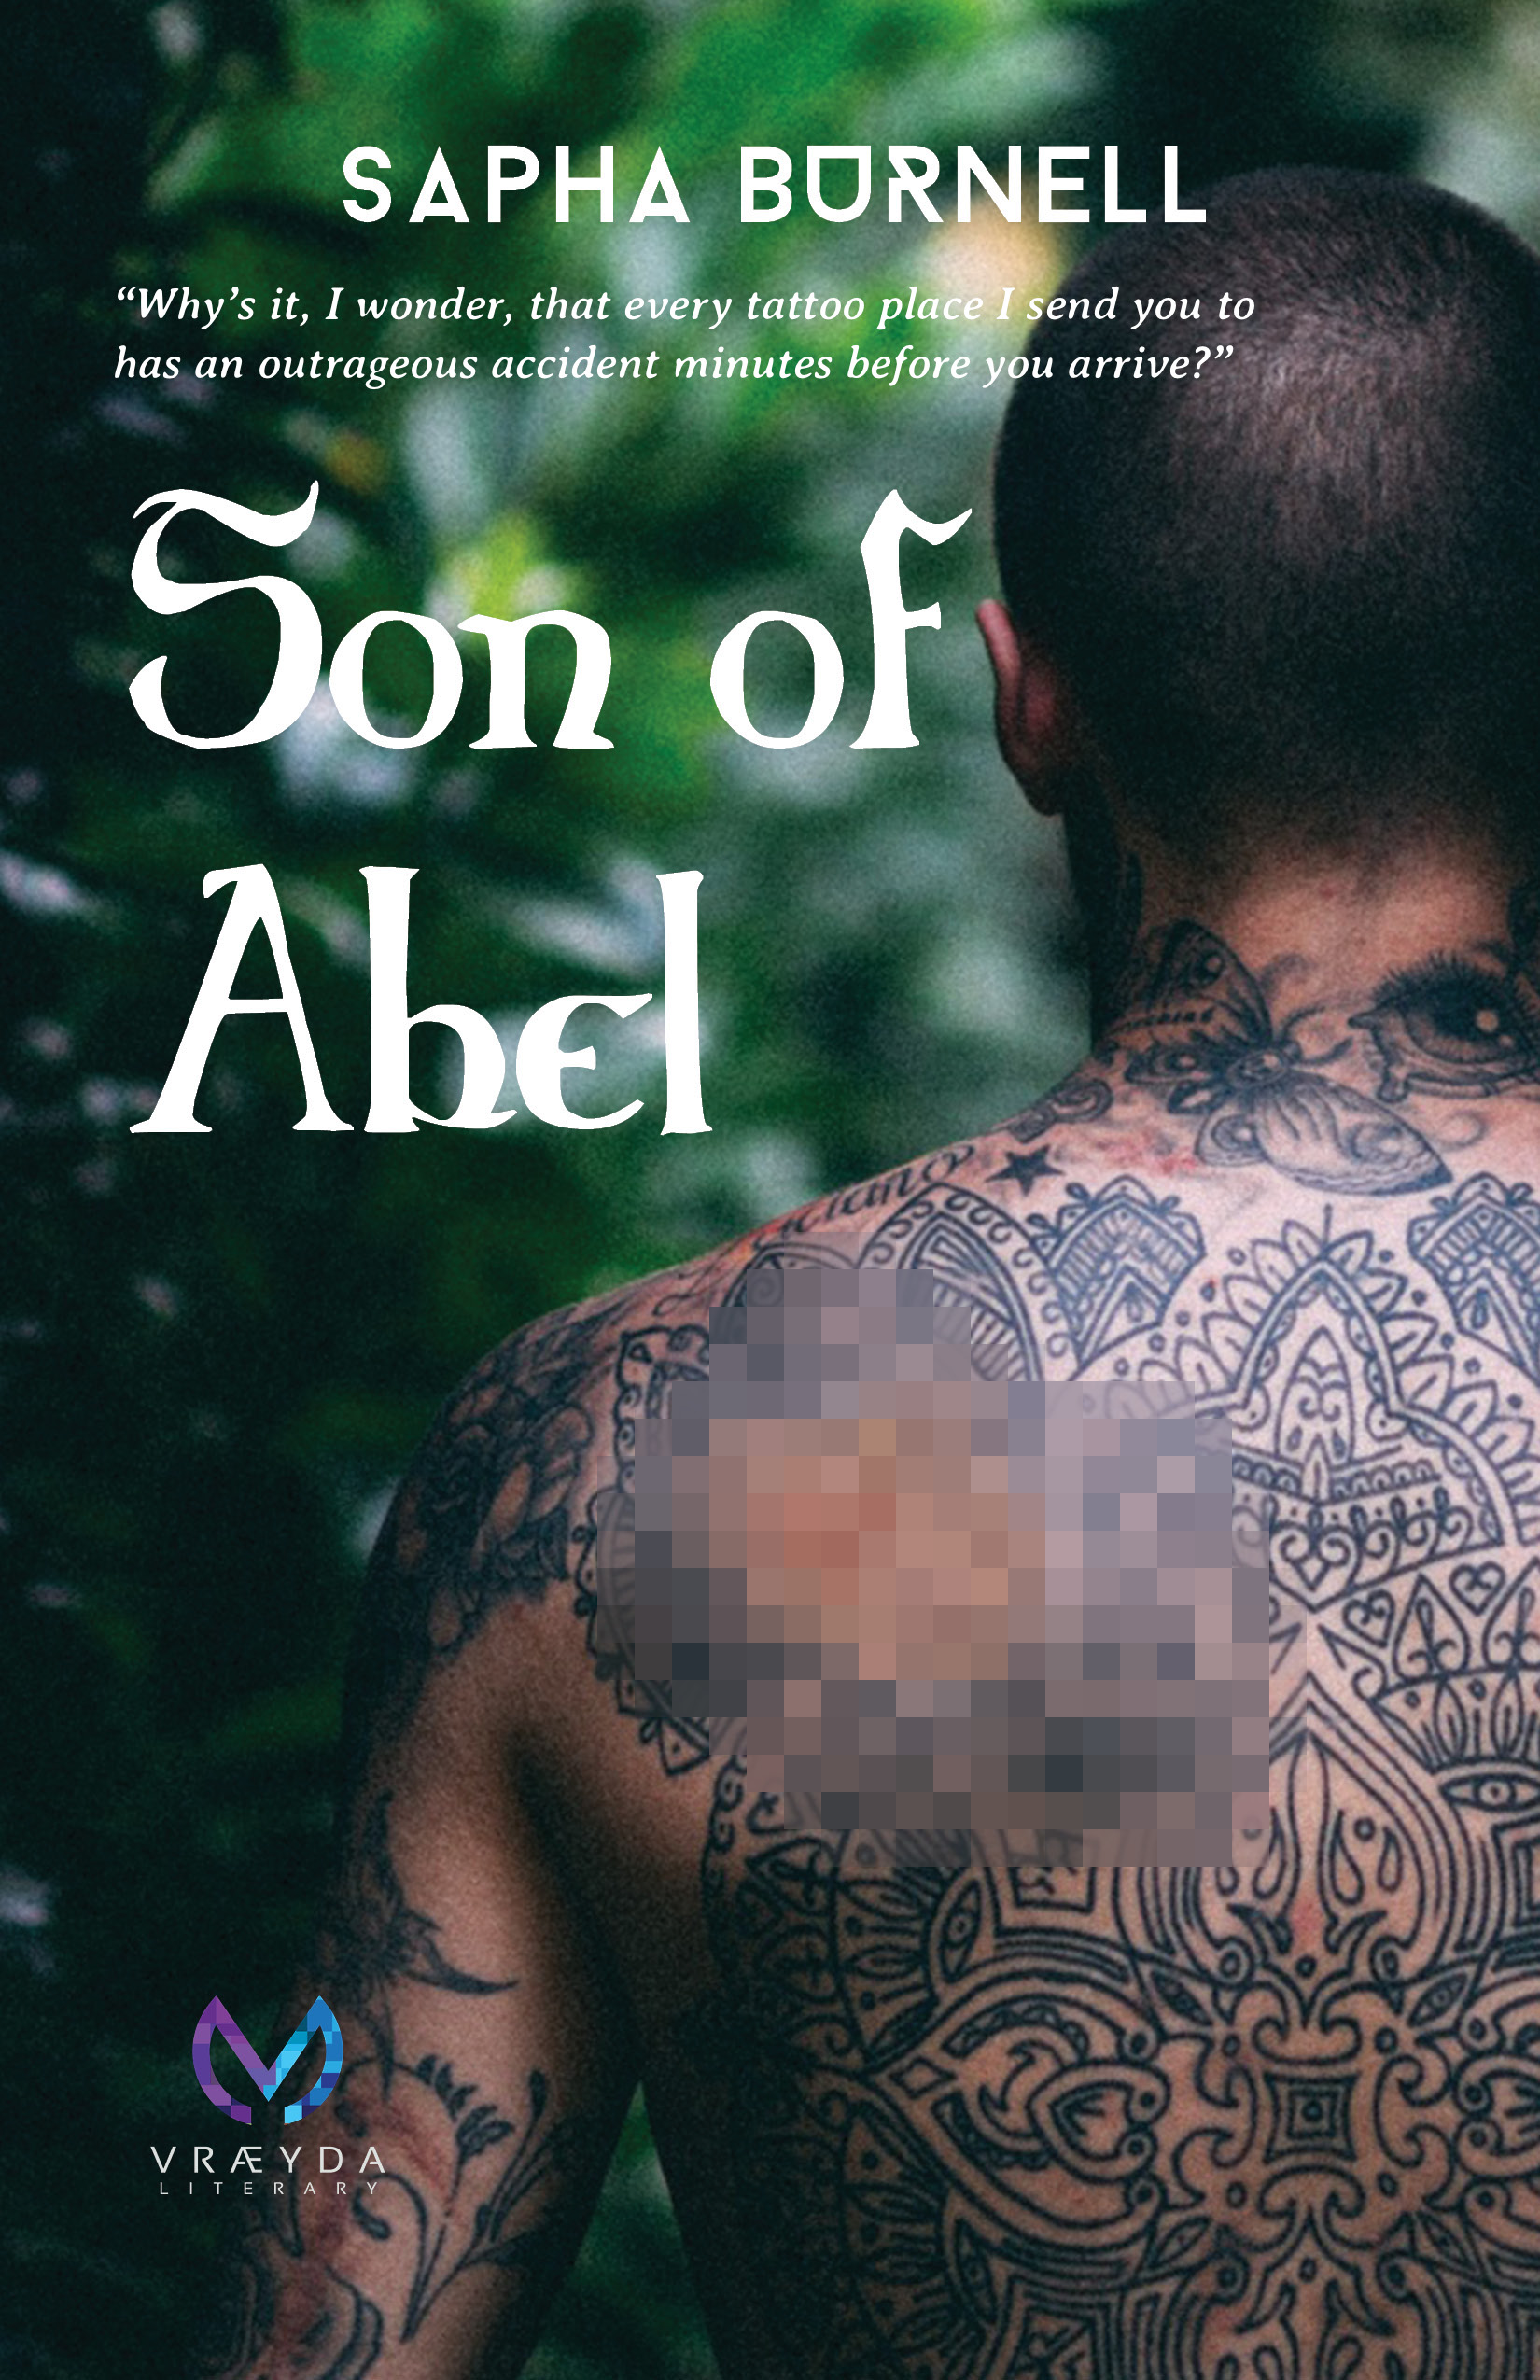 Be part of the action & read a pre-release review copy of Son of Abel.